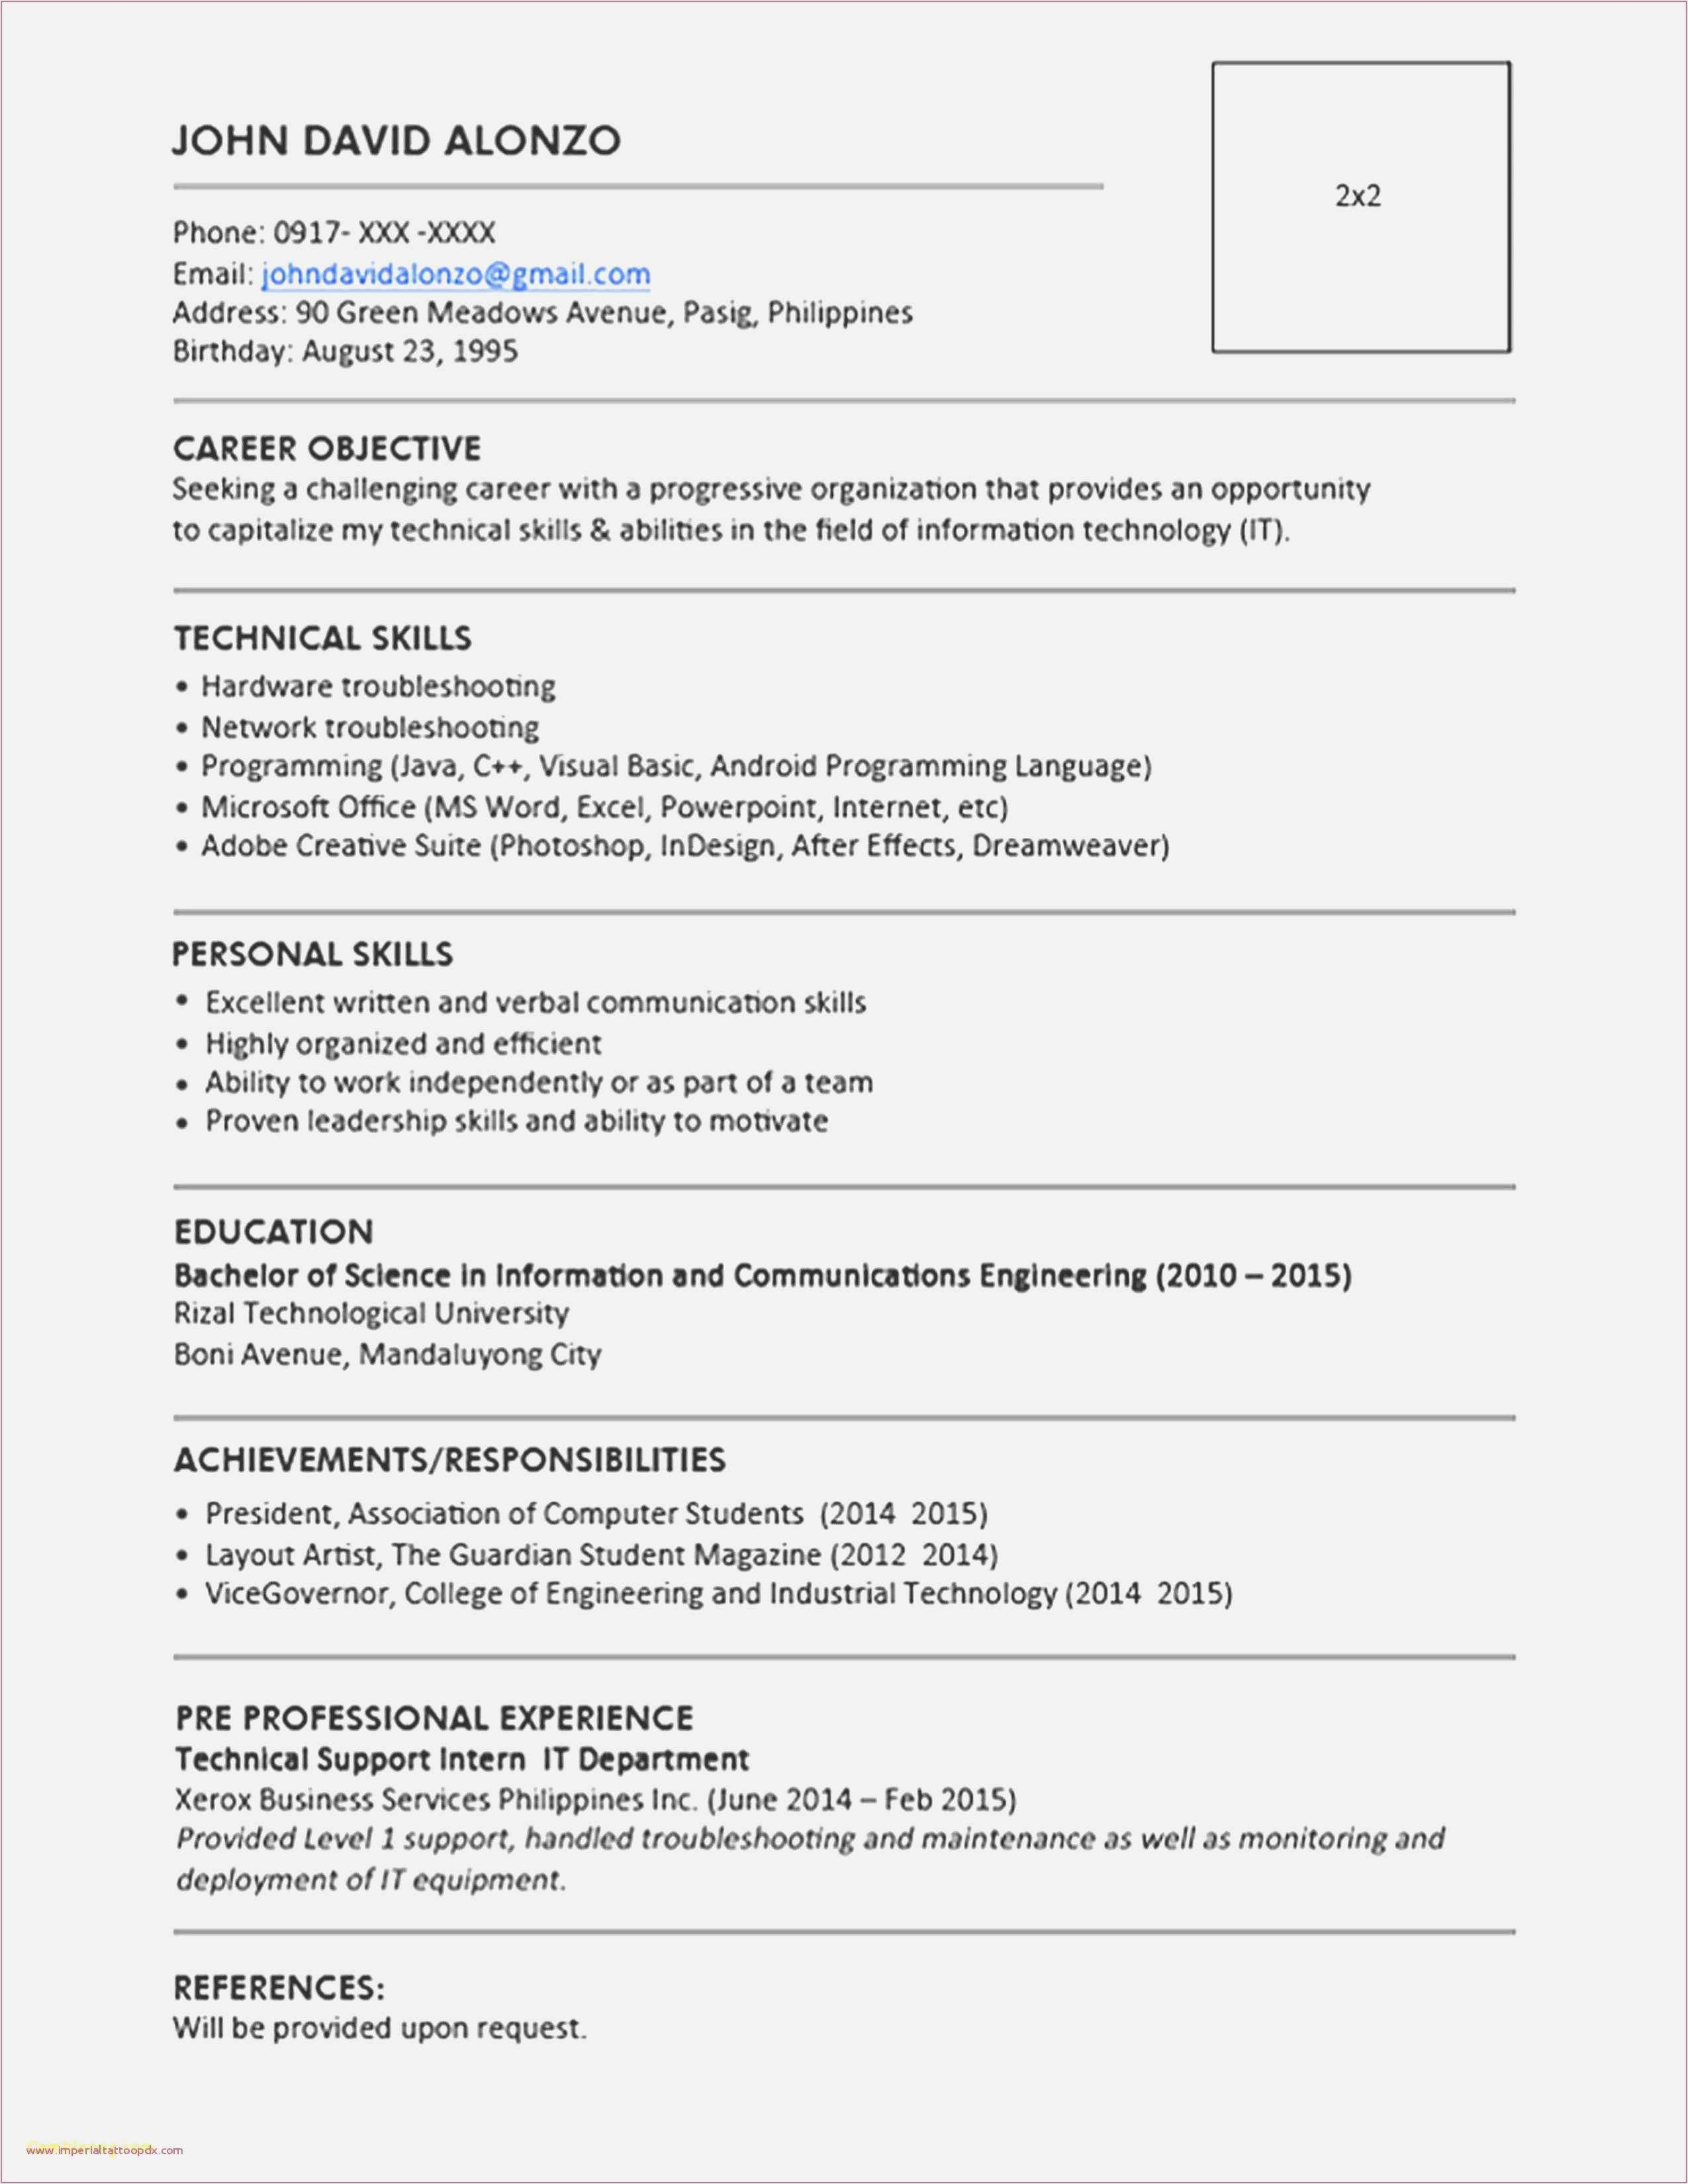 Office 2010 Business Card Template Free Collection Cv Layout Template Word New Templates 0d Indesign Resume Template Resume Template Word Resume Template Free